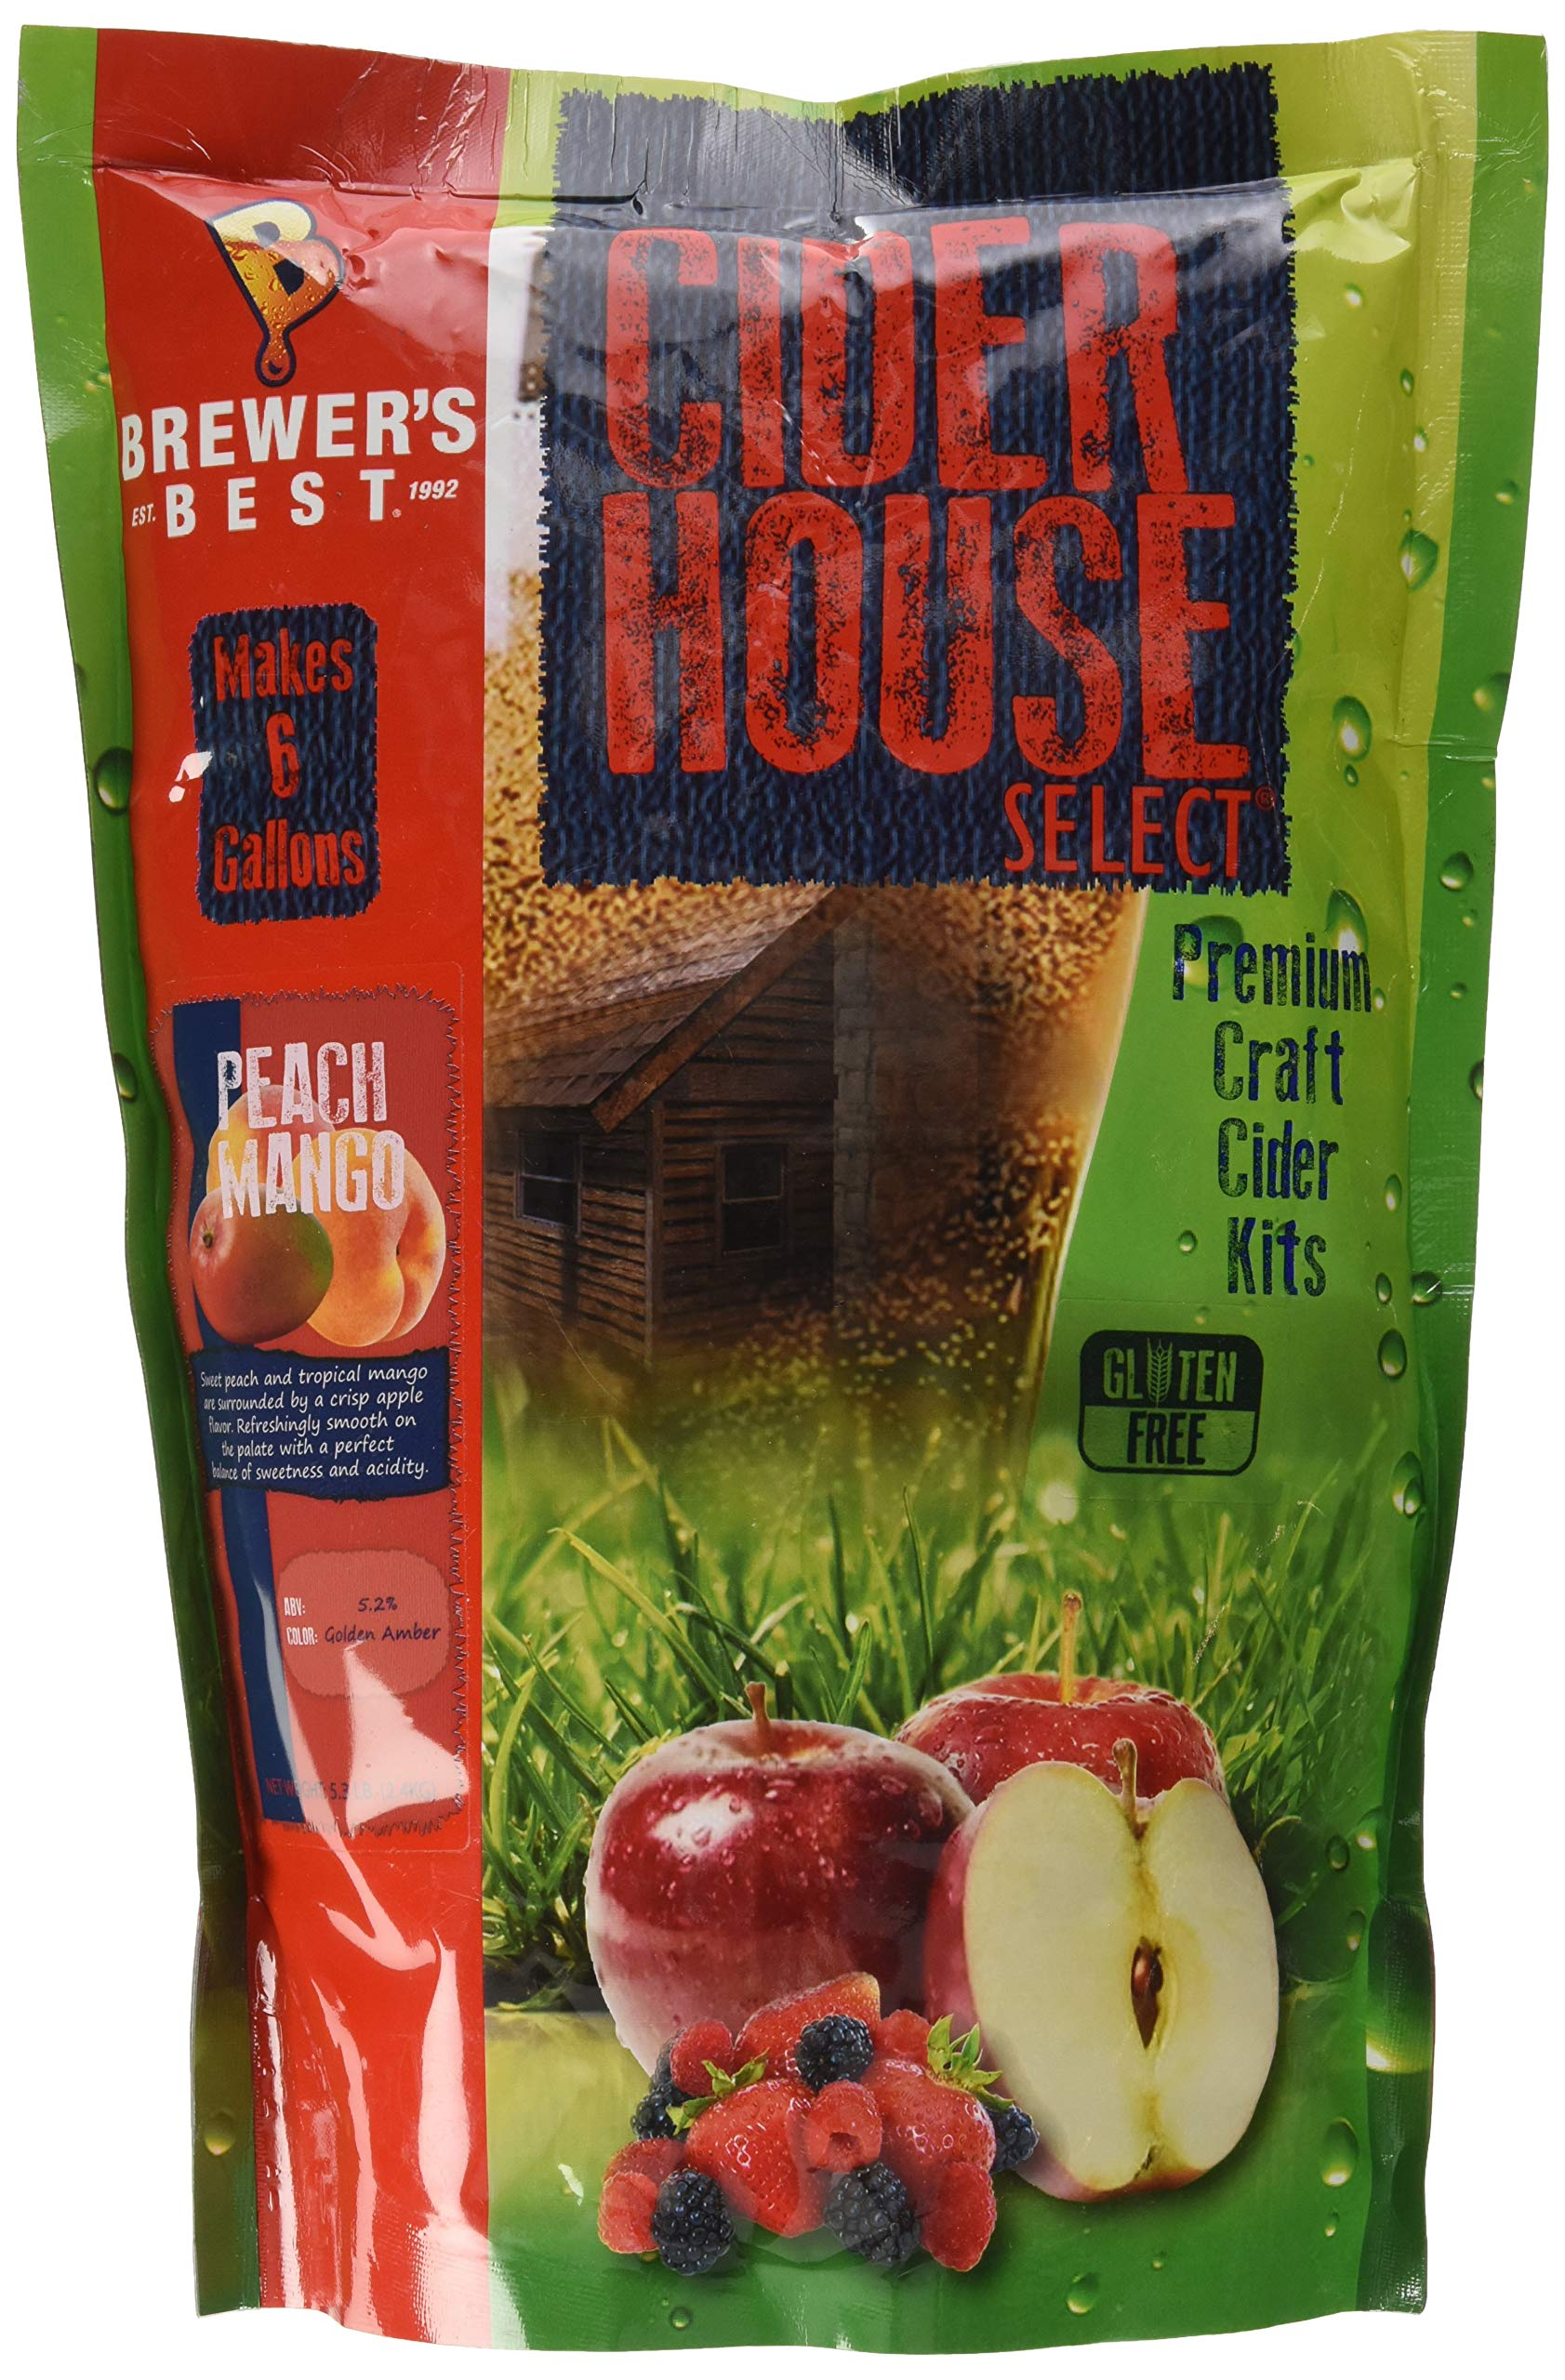 Home Brew Ohio Brewer's Best House Select Peach Mango Cider Kit